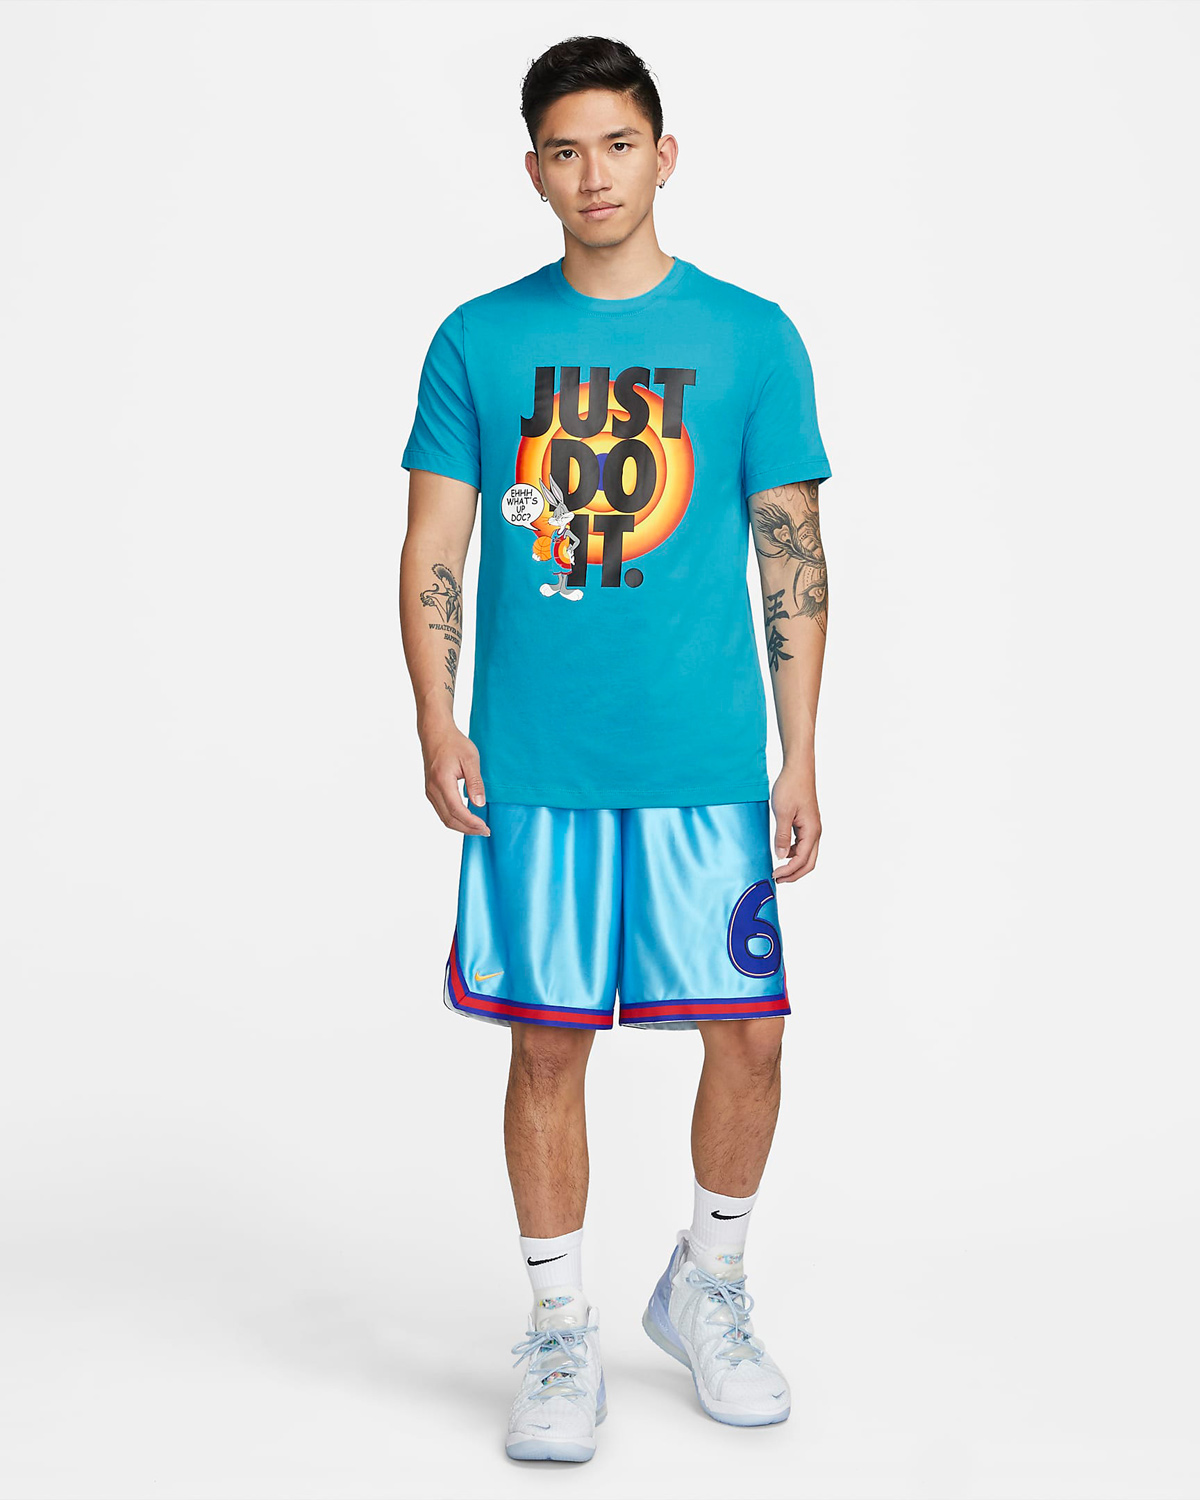 nike-space-jam-a-new-legacy-jdi-just-do-it-shirt-blue-3